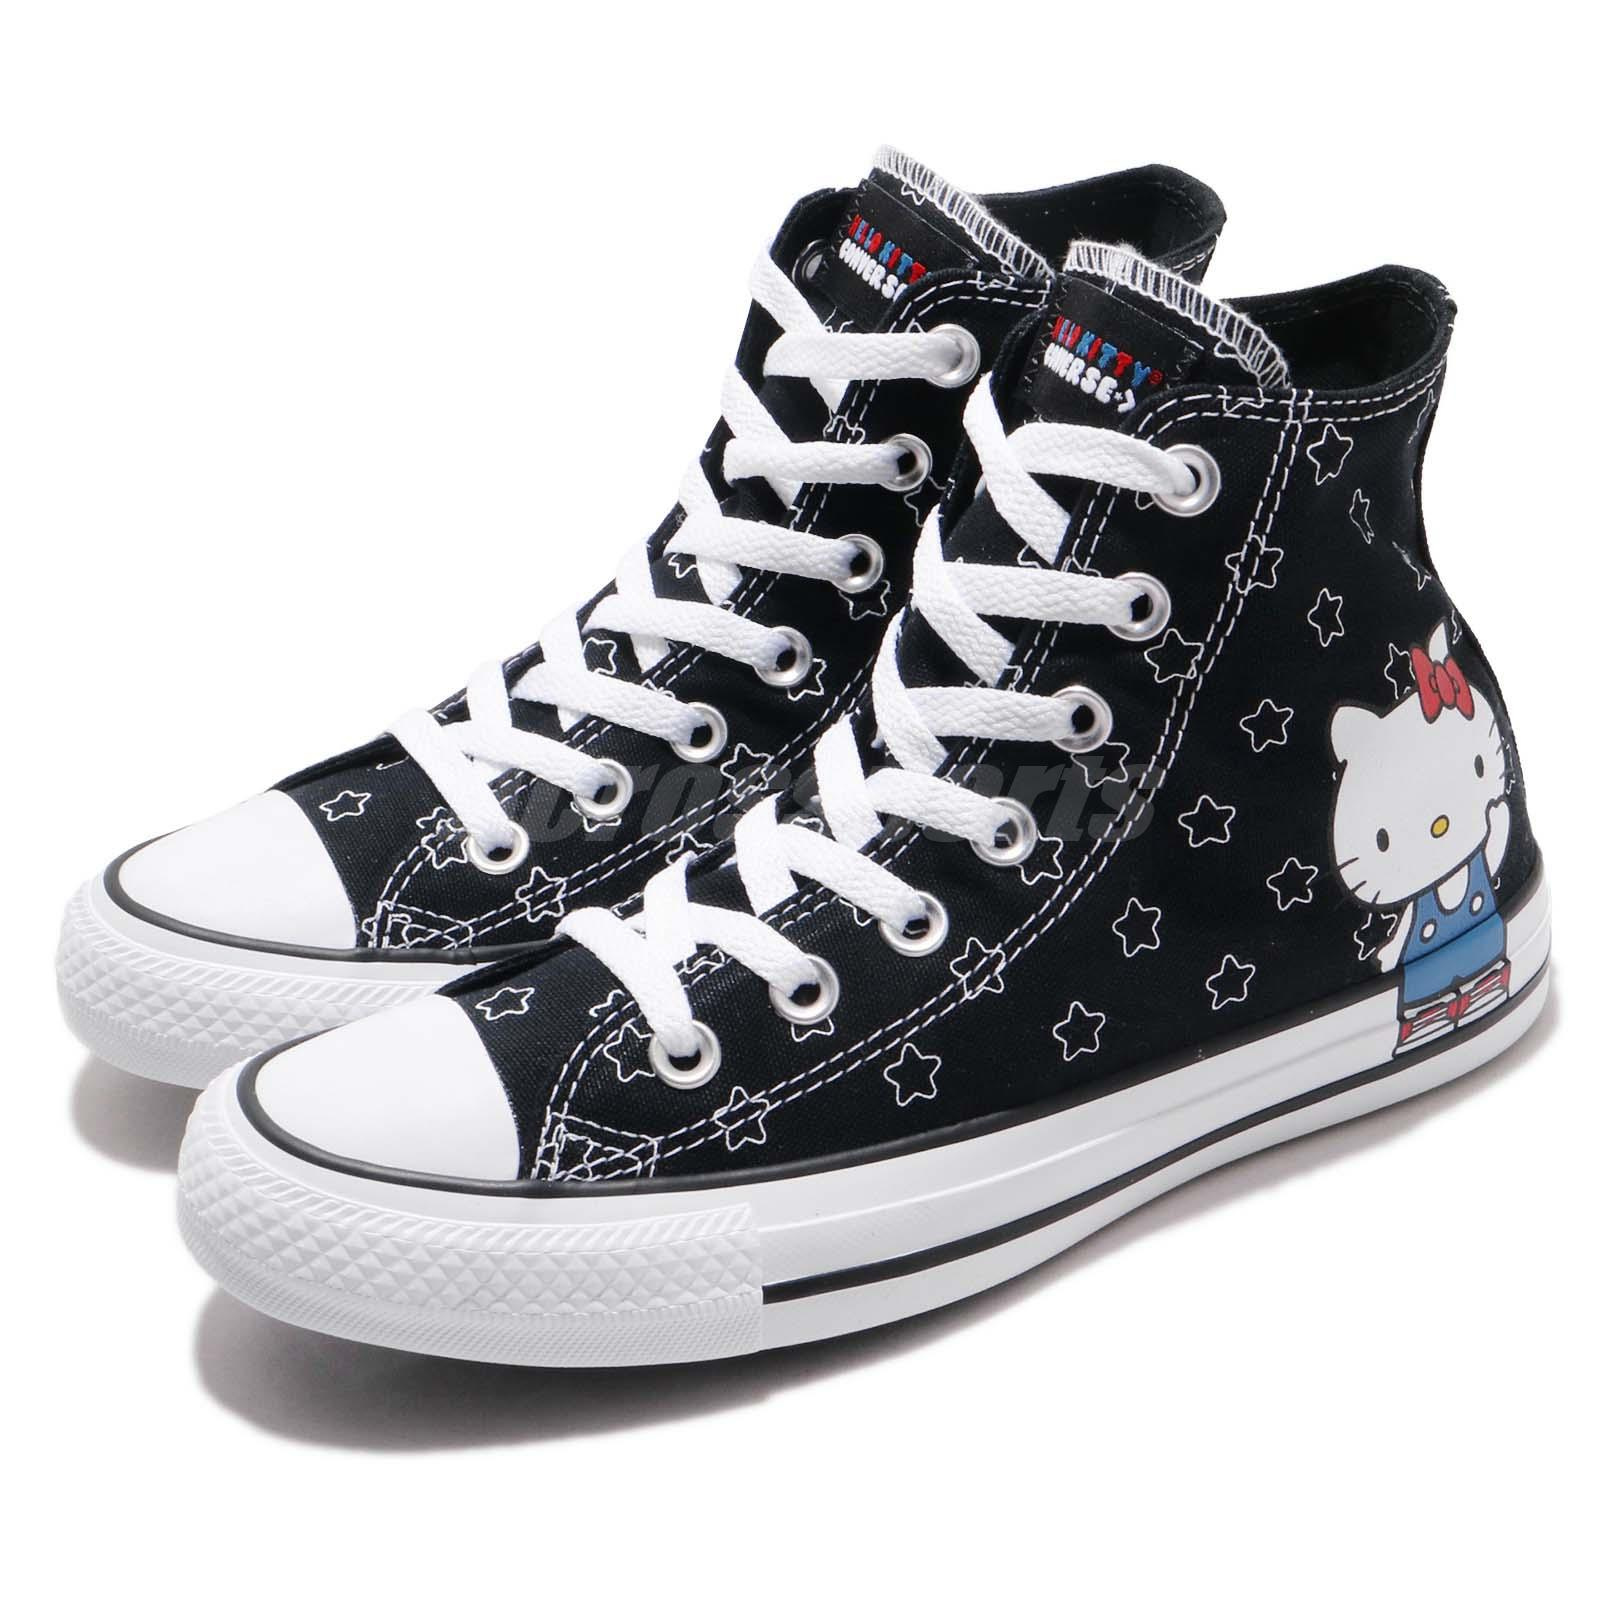 8f83a9a4704343 Details about Converse Hello Kitty Chuck Taylor All Star Black Men Women  Casual Shoes 163919C